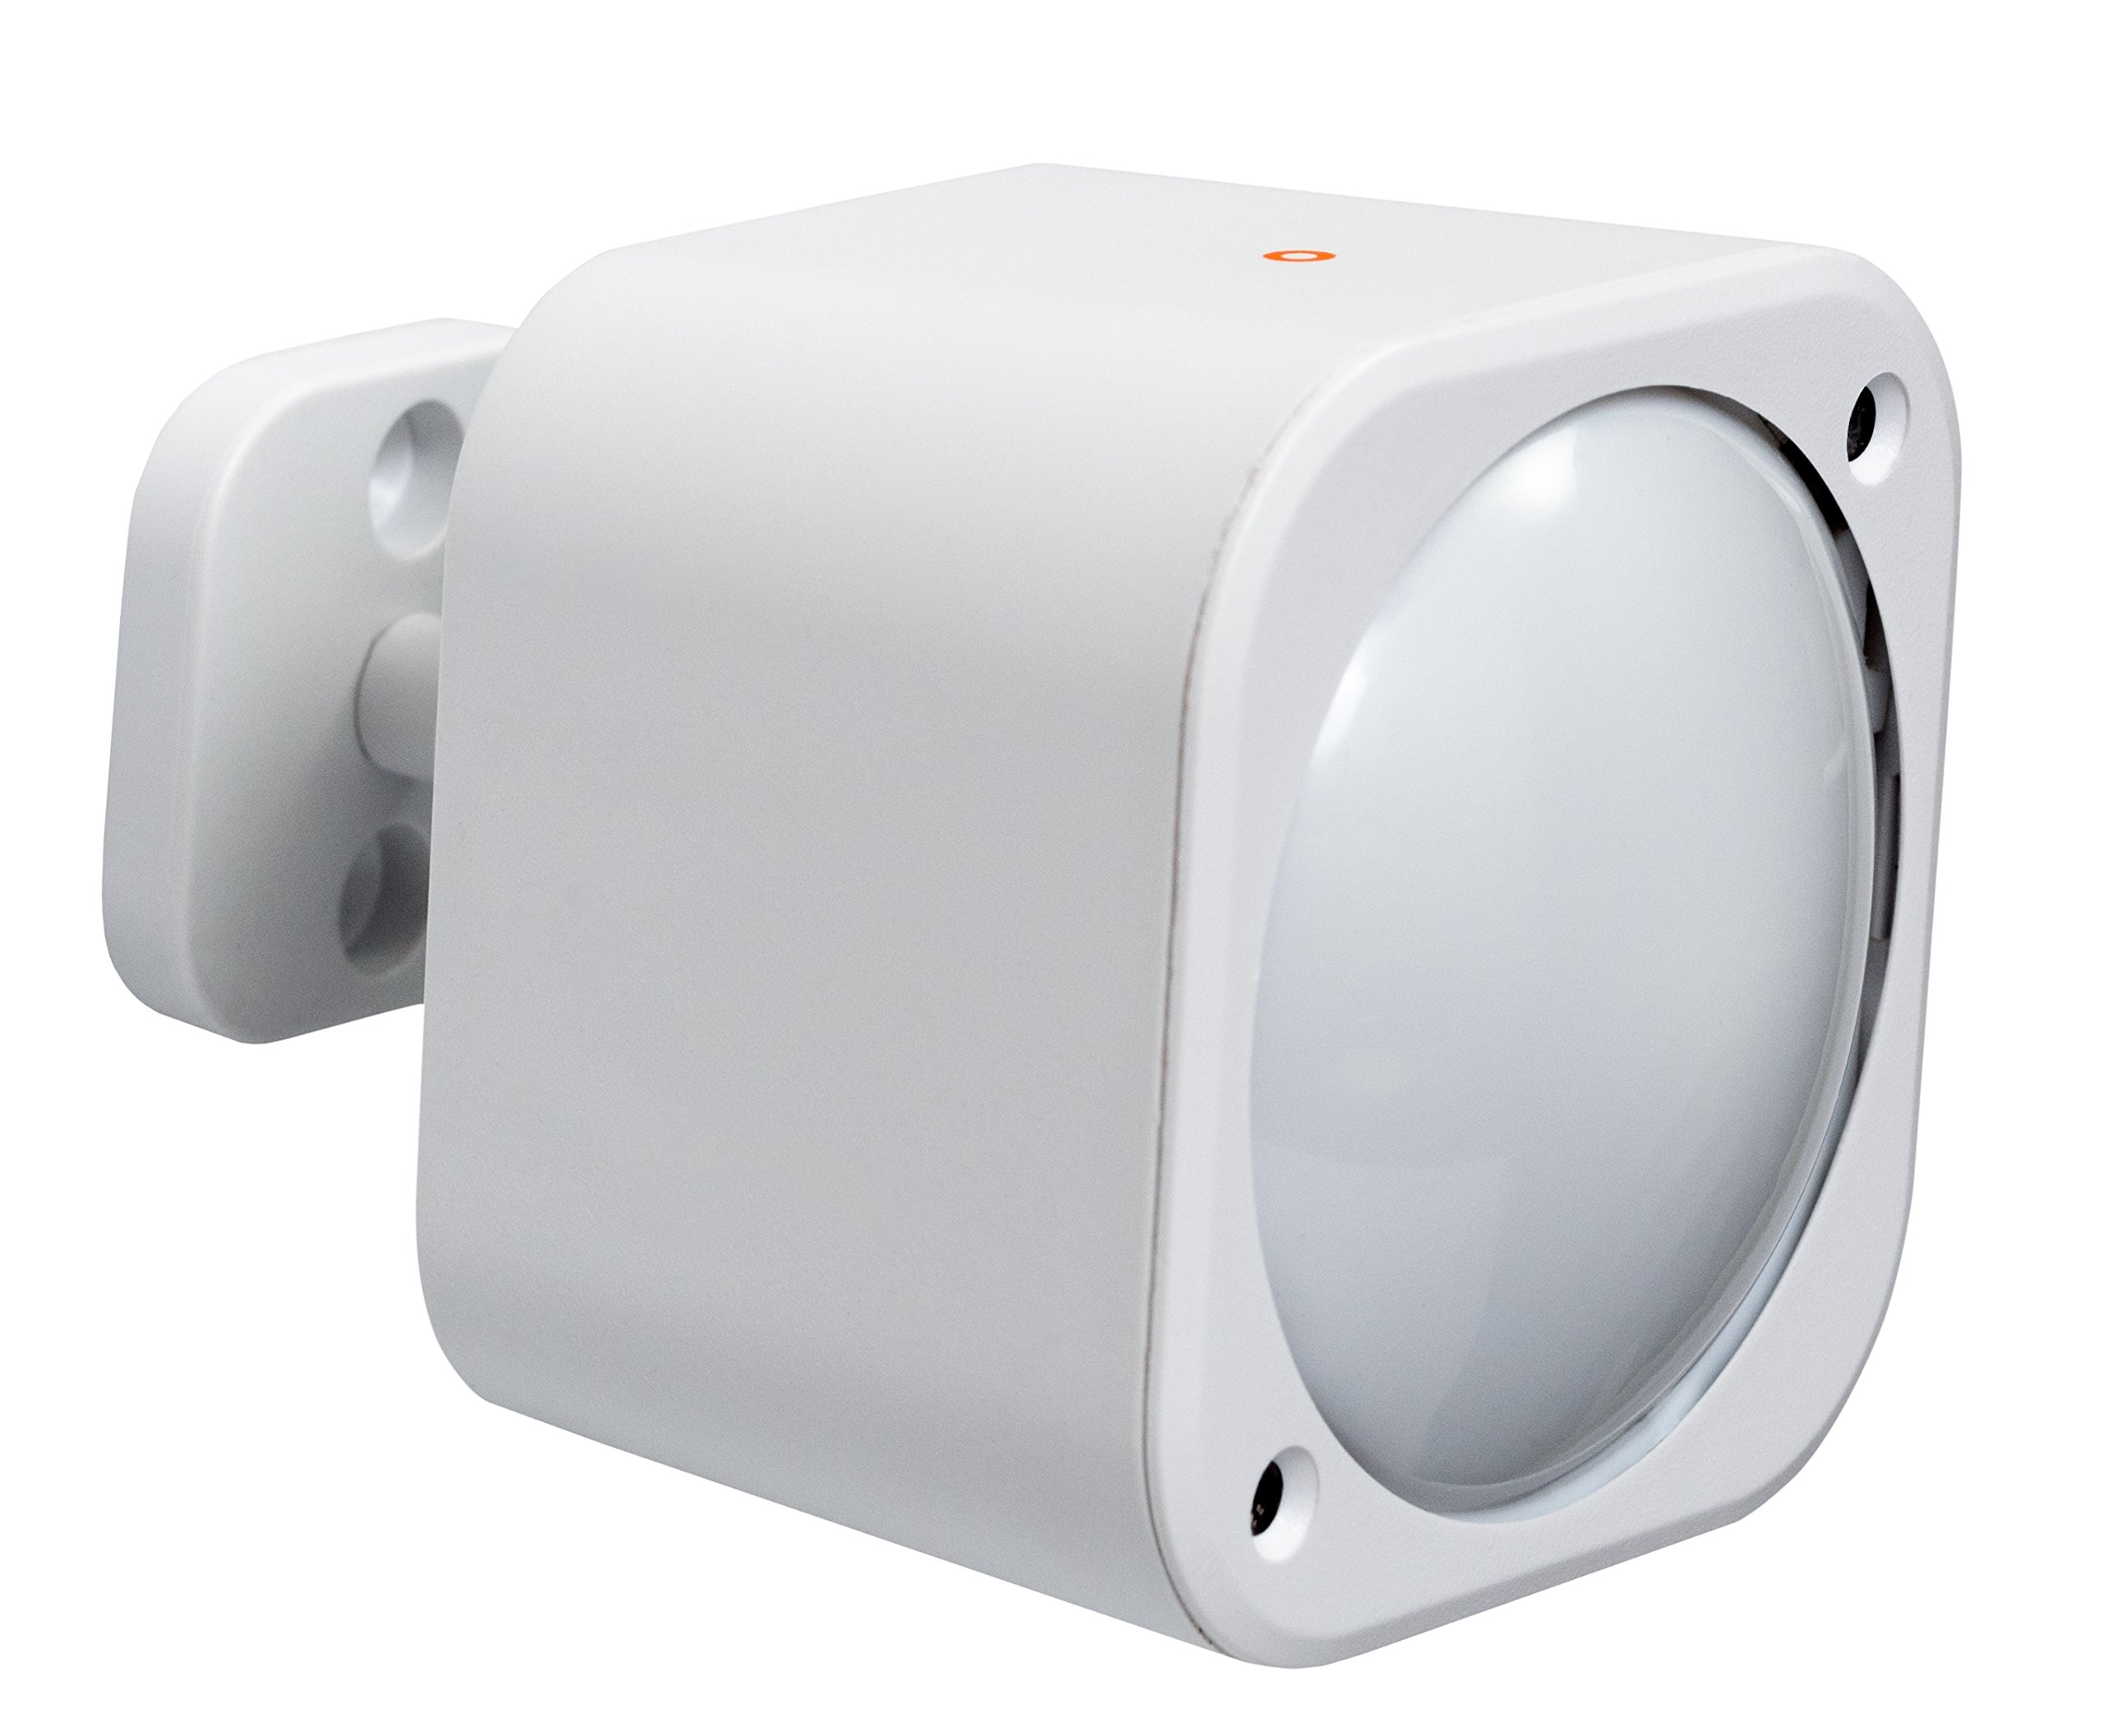 Oomi MultiSensor - Six Z-Wave Sensors in One - Motion, Temperature, Humidity, Light, UV Light, and Vibration. Secure, Automate, and Monitor Your Home by Oomi (Image #4)